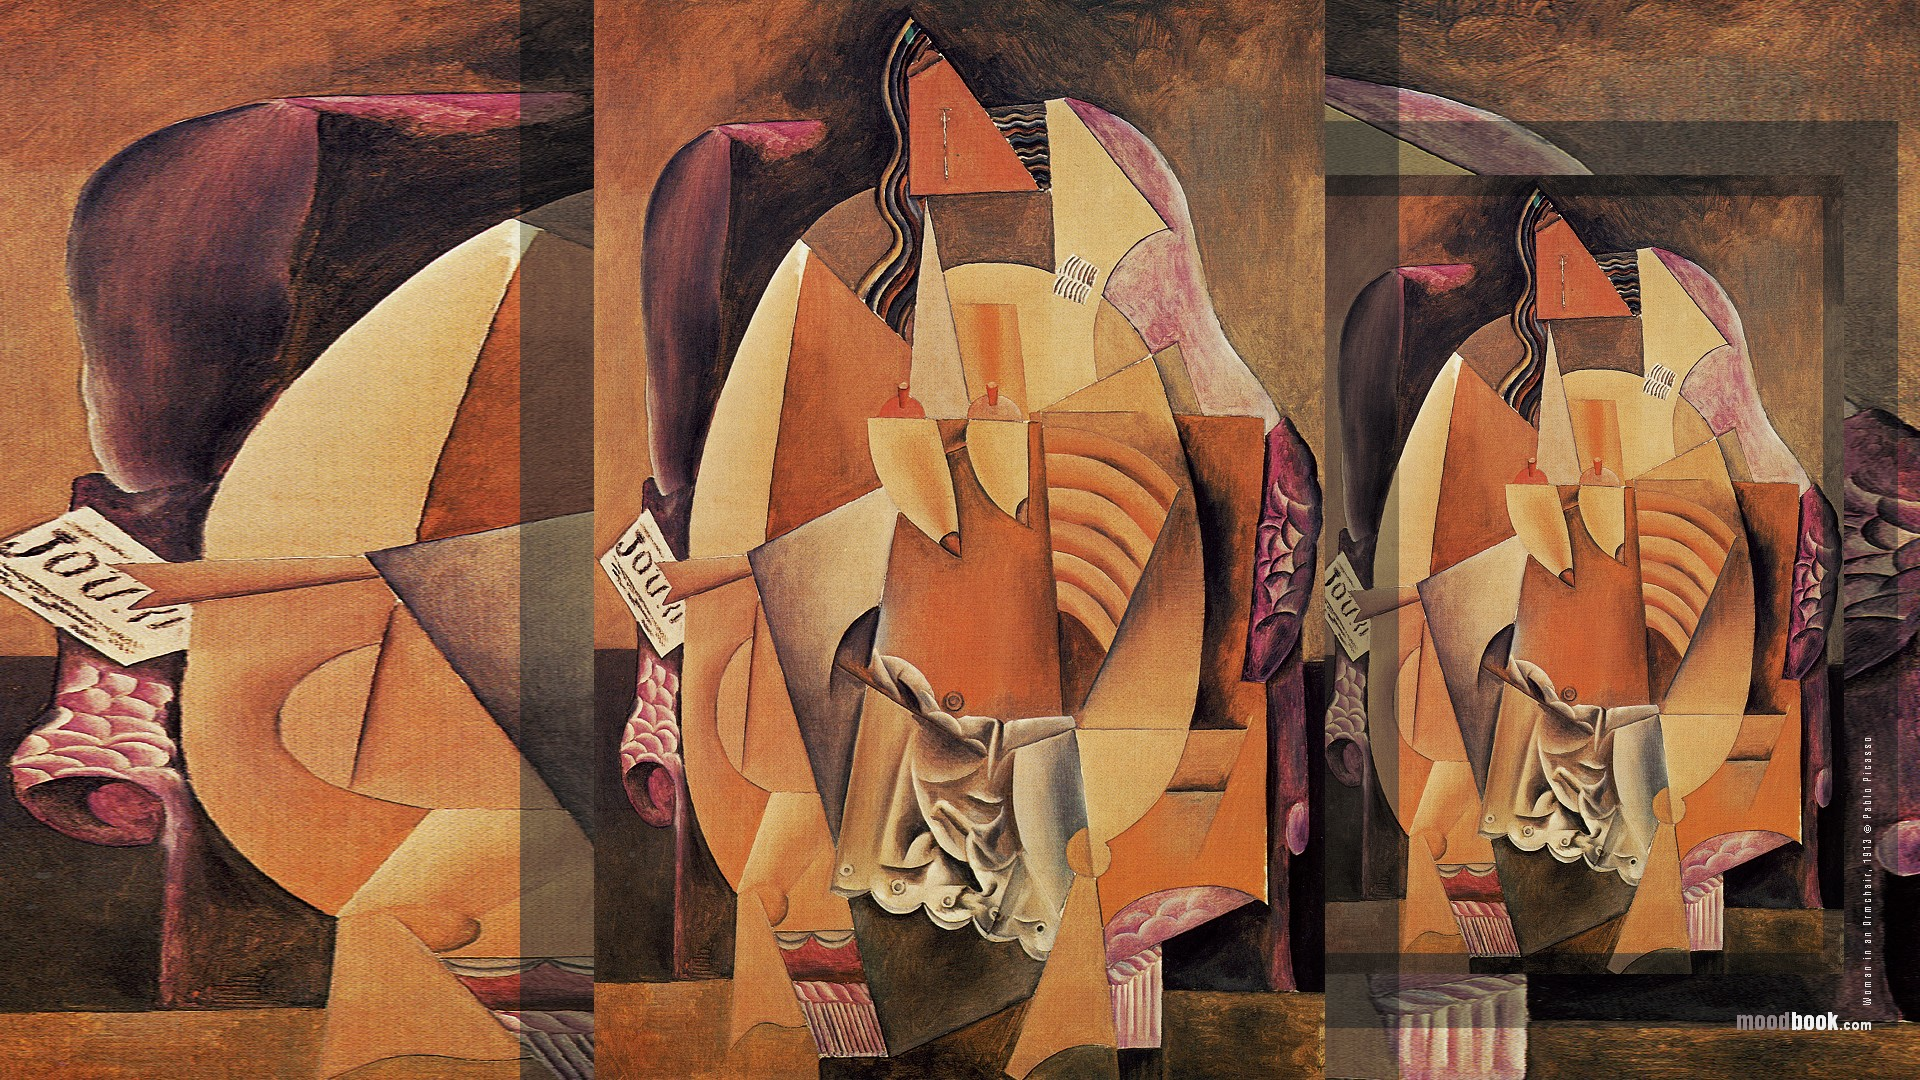 picasso art wallpapers - photo #36